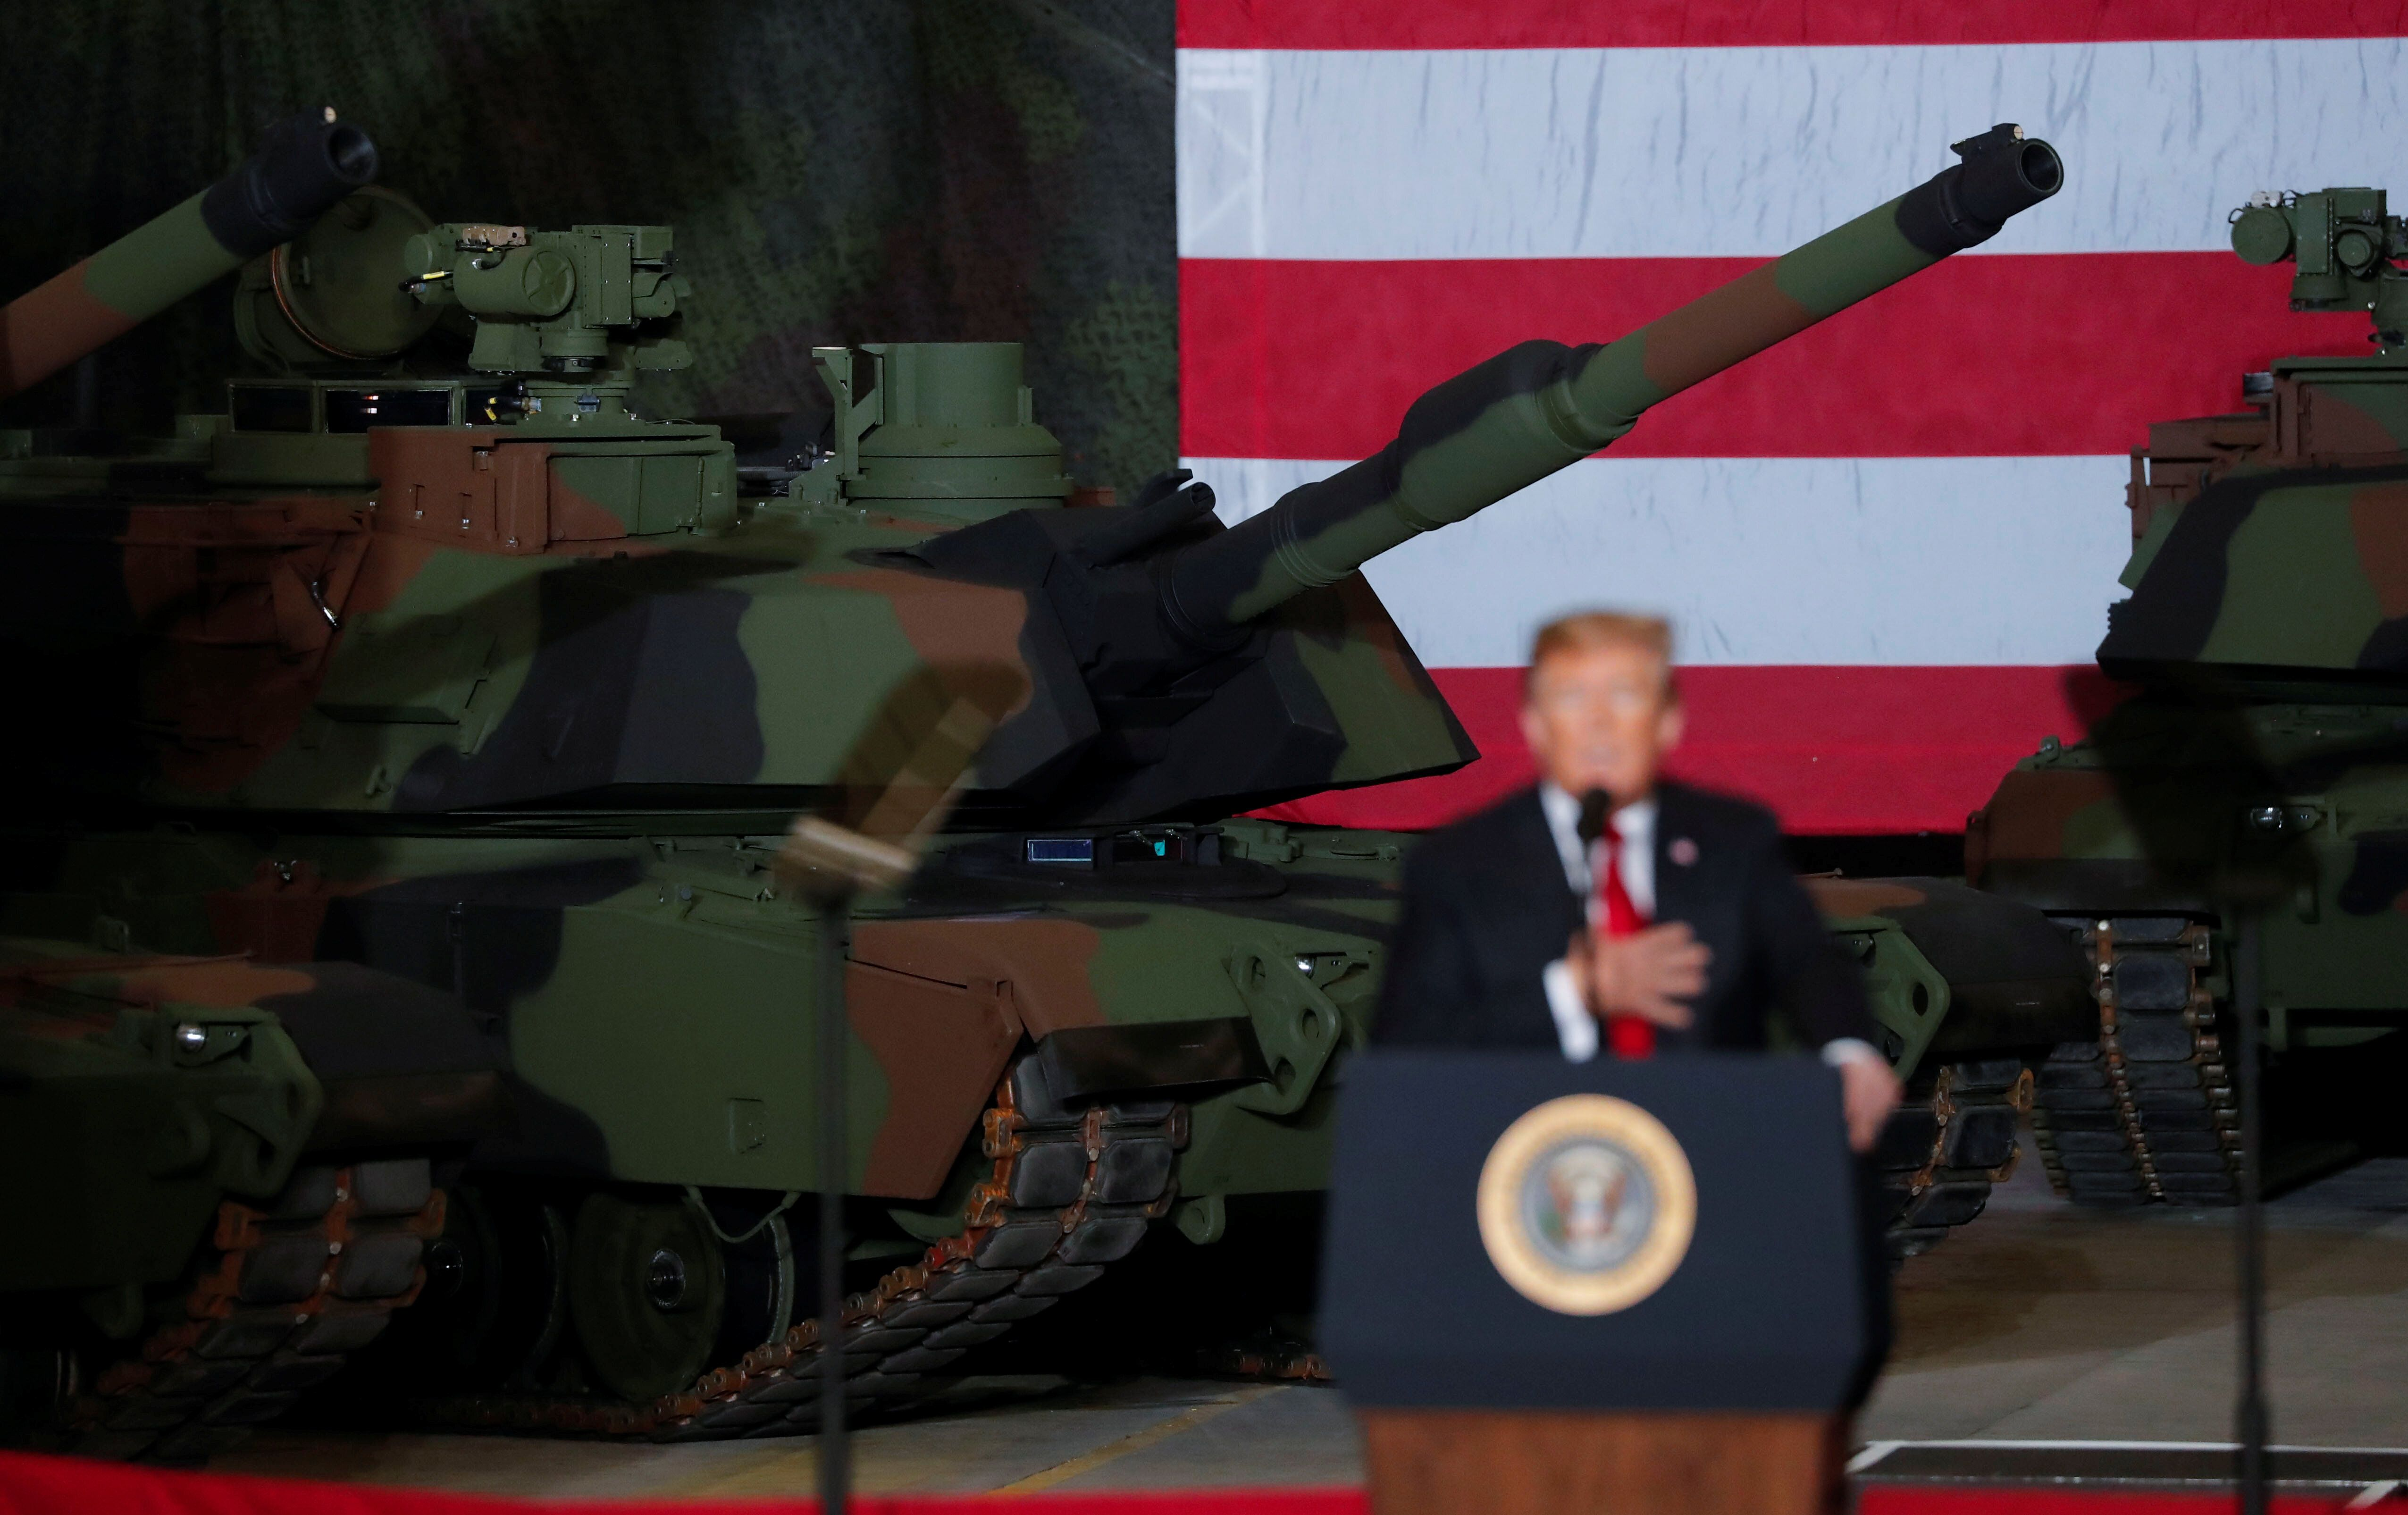 President Donald Trump speaks to workers in front of tanks on display at the Lima Army Tank Plant Joint Systems Manufacturing